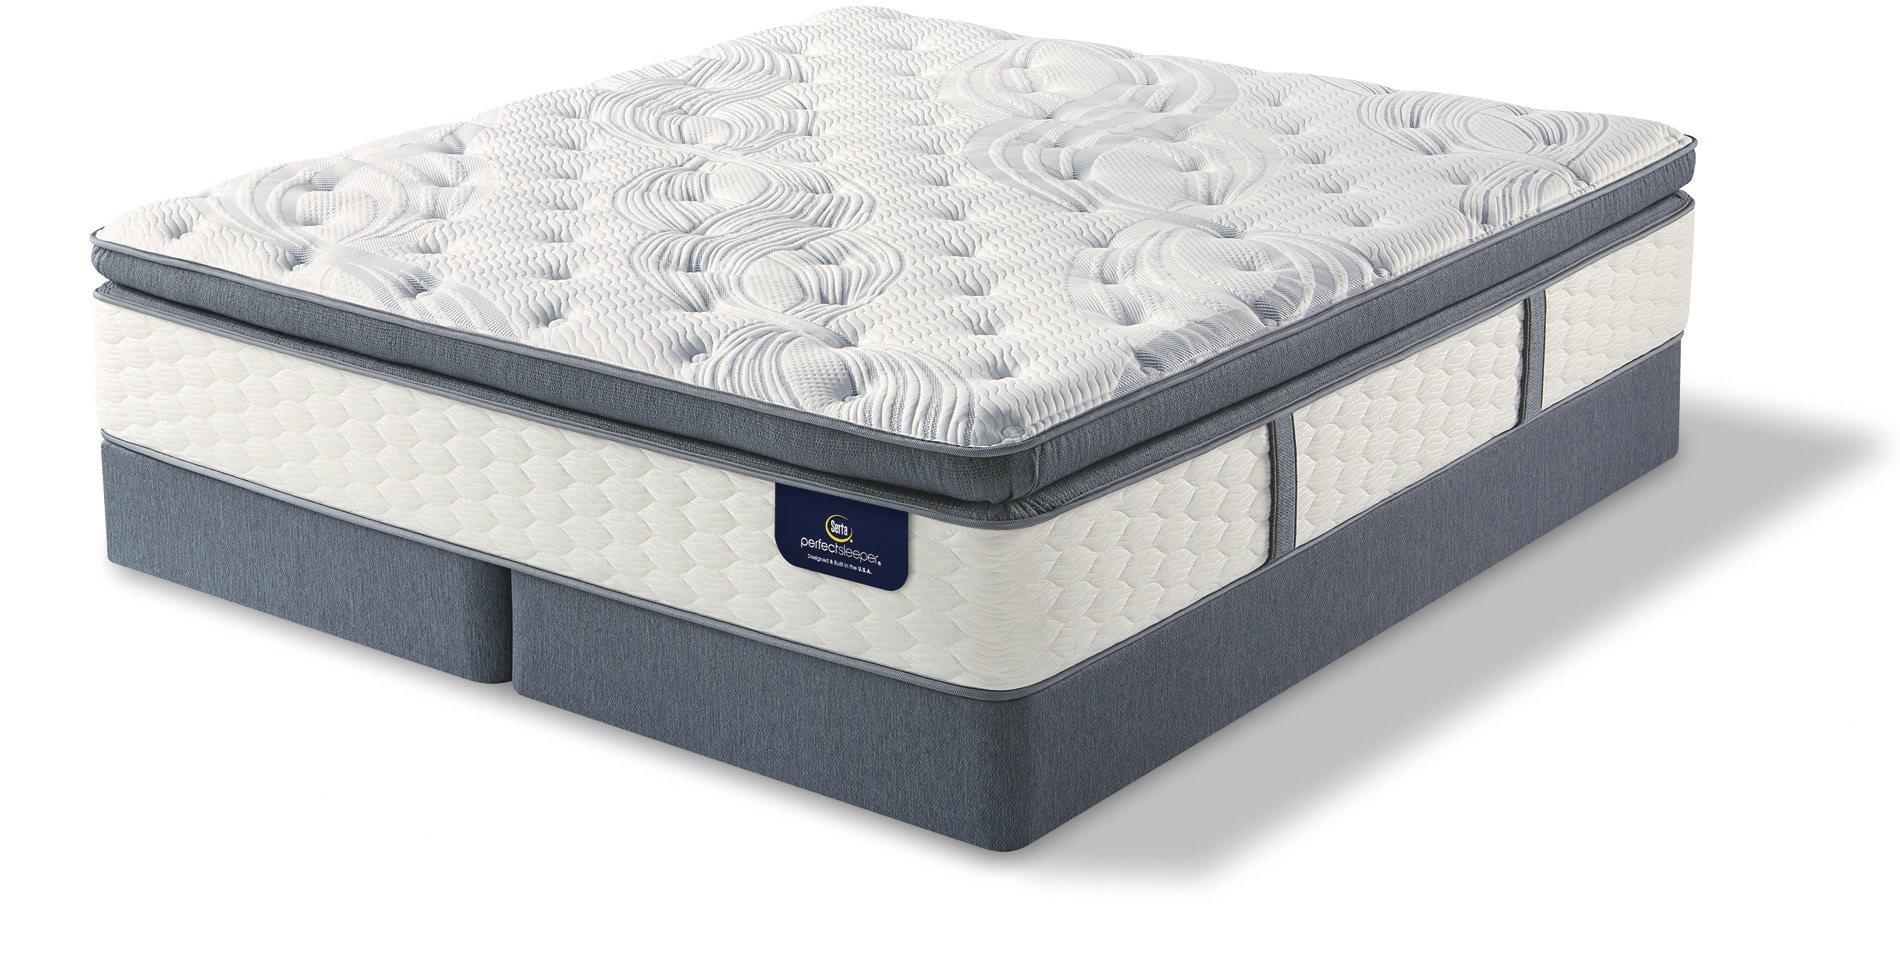 Linden Pond Super Pillow Top Mattress Set - King Perfect Sleeper® by Serta  - 477907